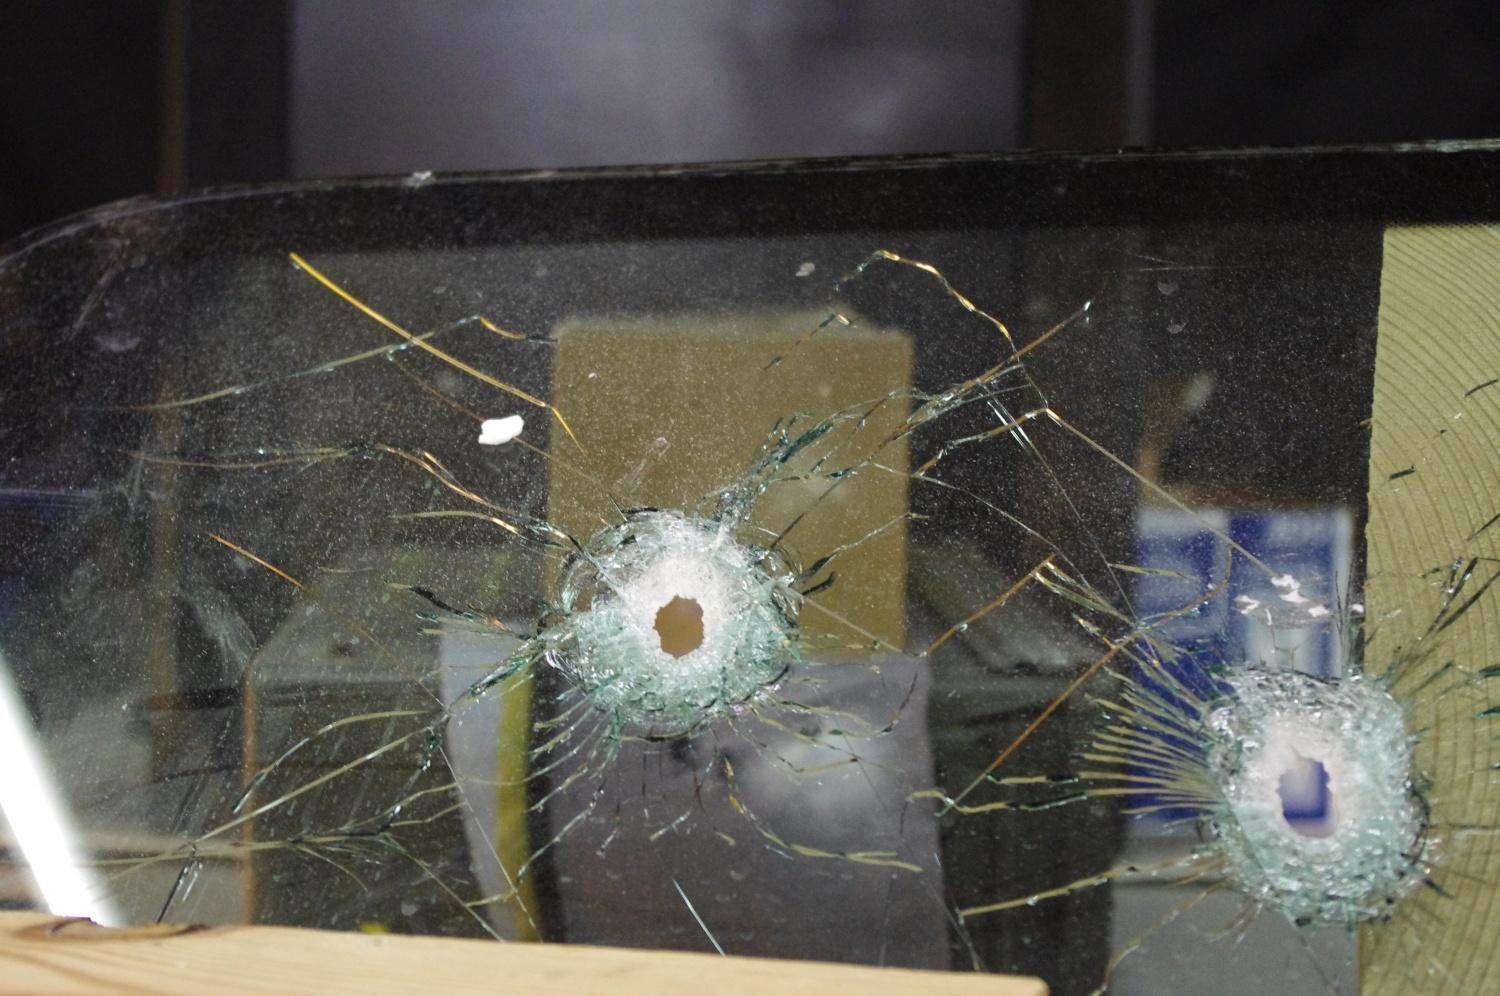 Holes in the glass...